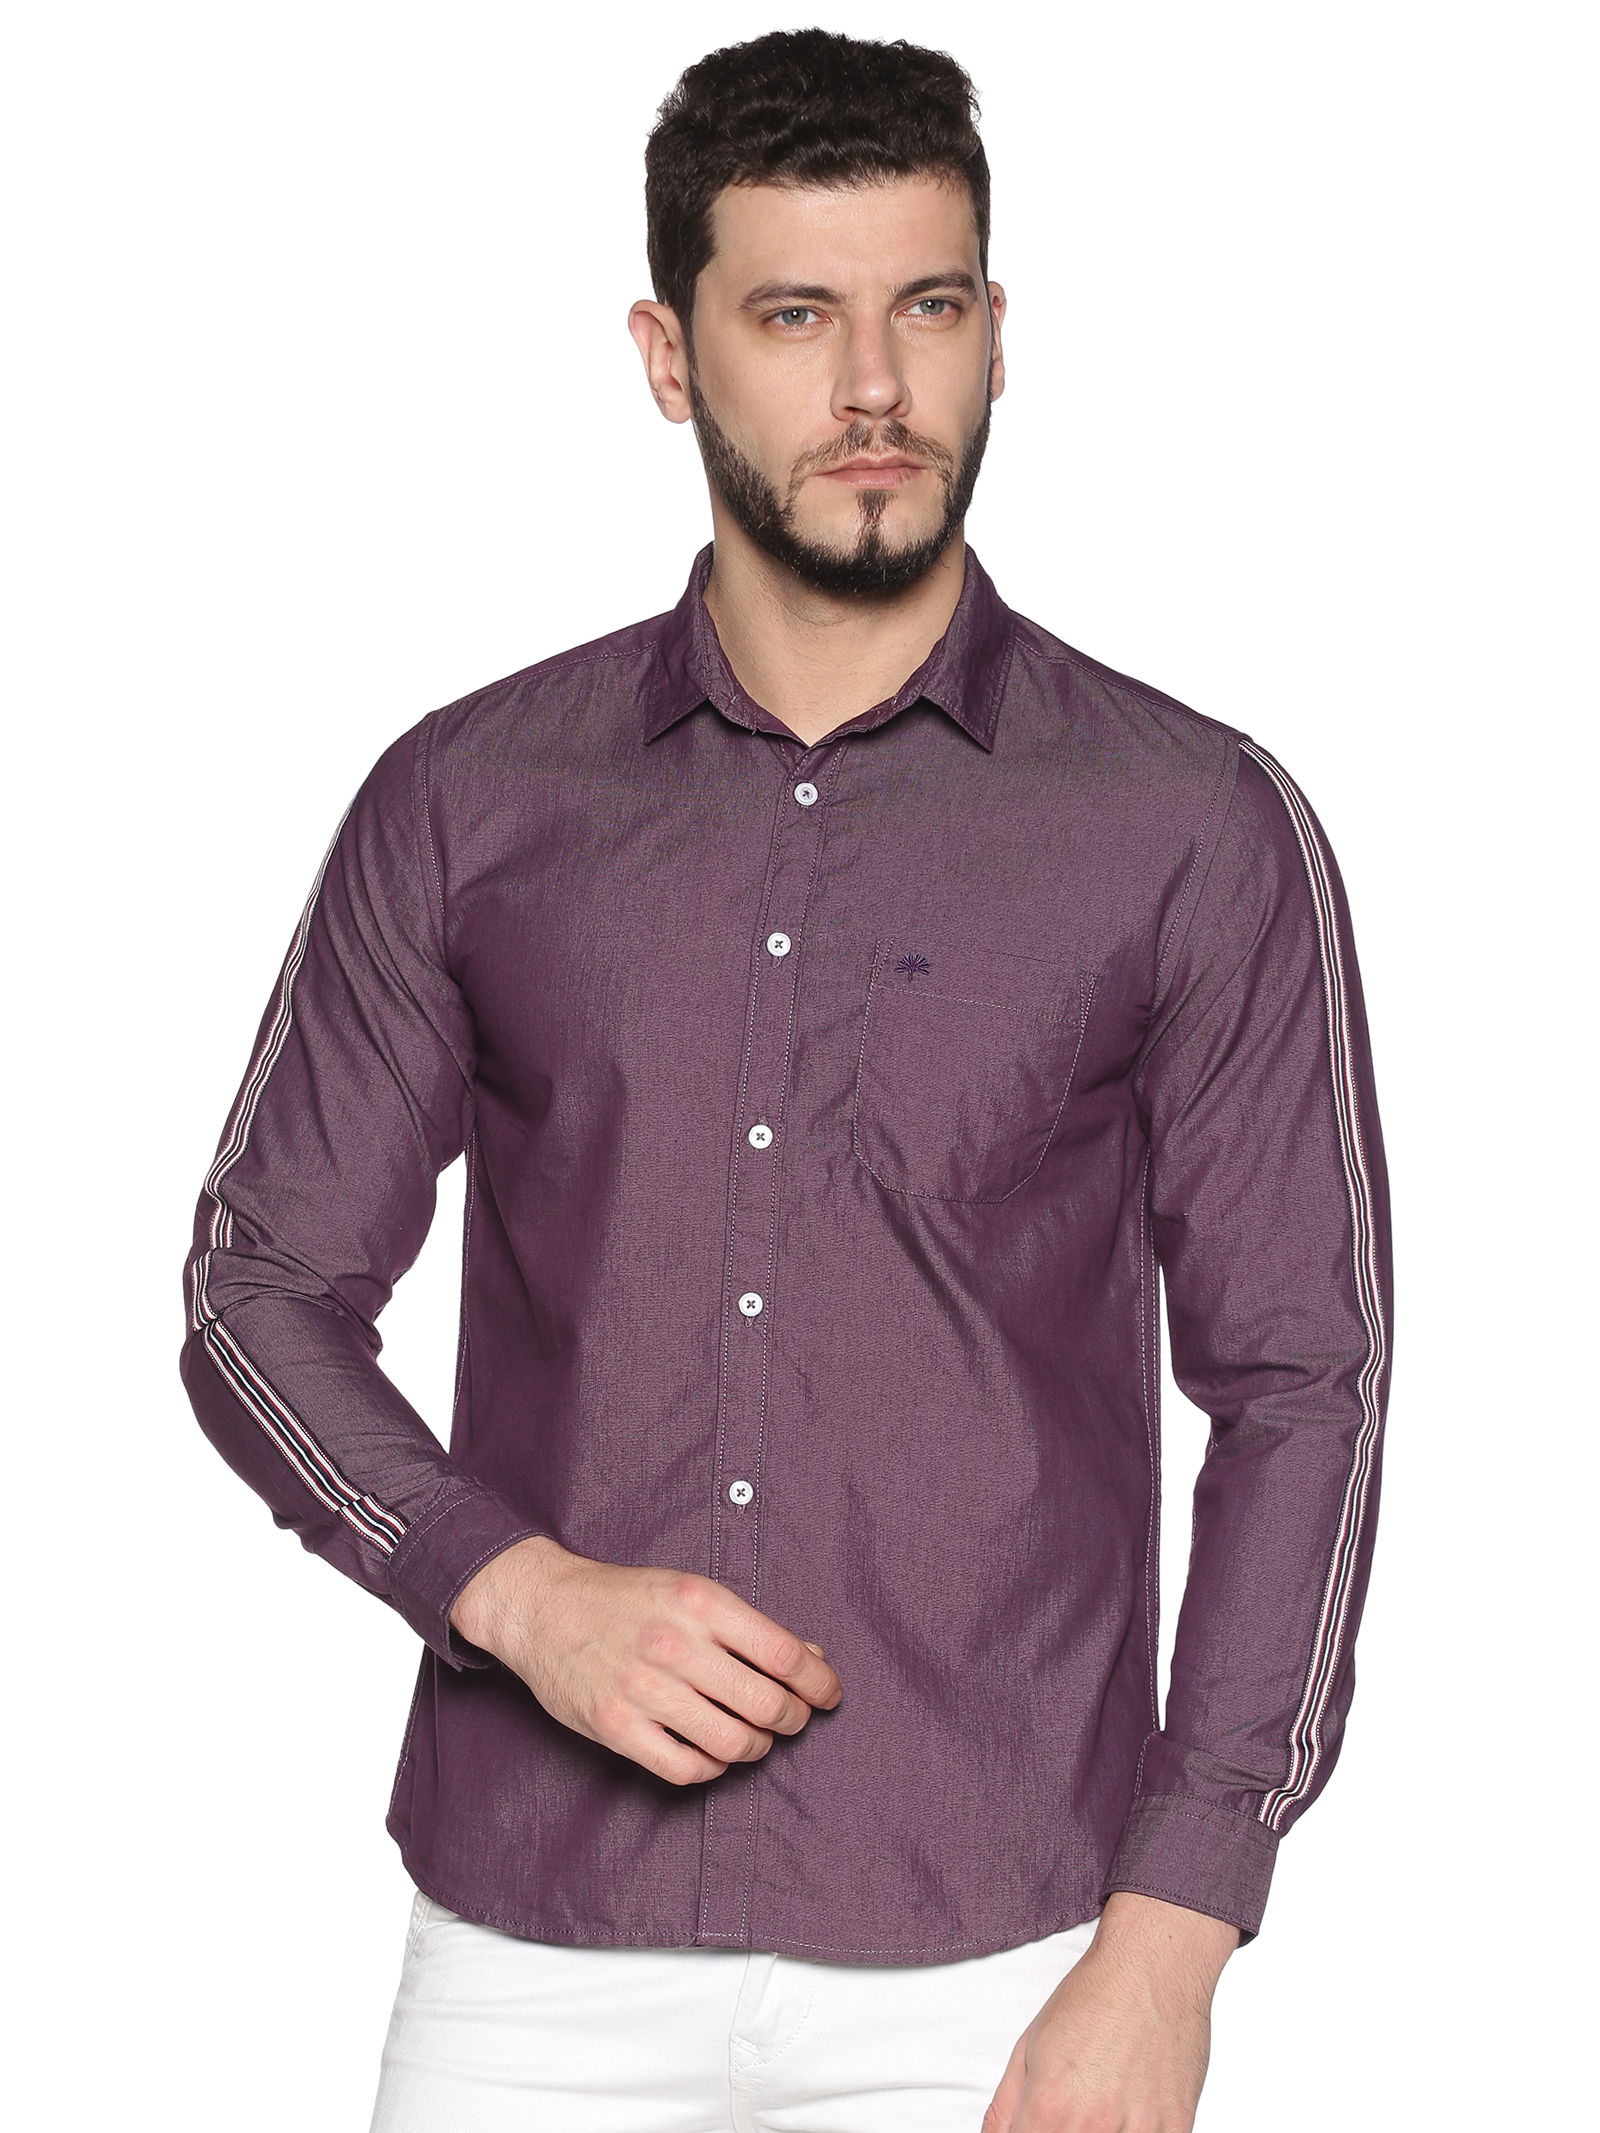 Chennis | Chennis Men's Purple Cotton Casual Shirt With Side Tape on Sleeves